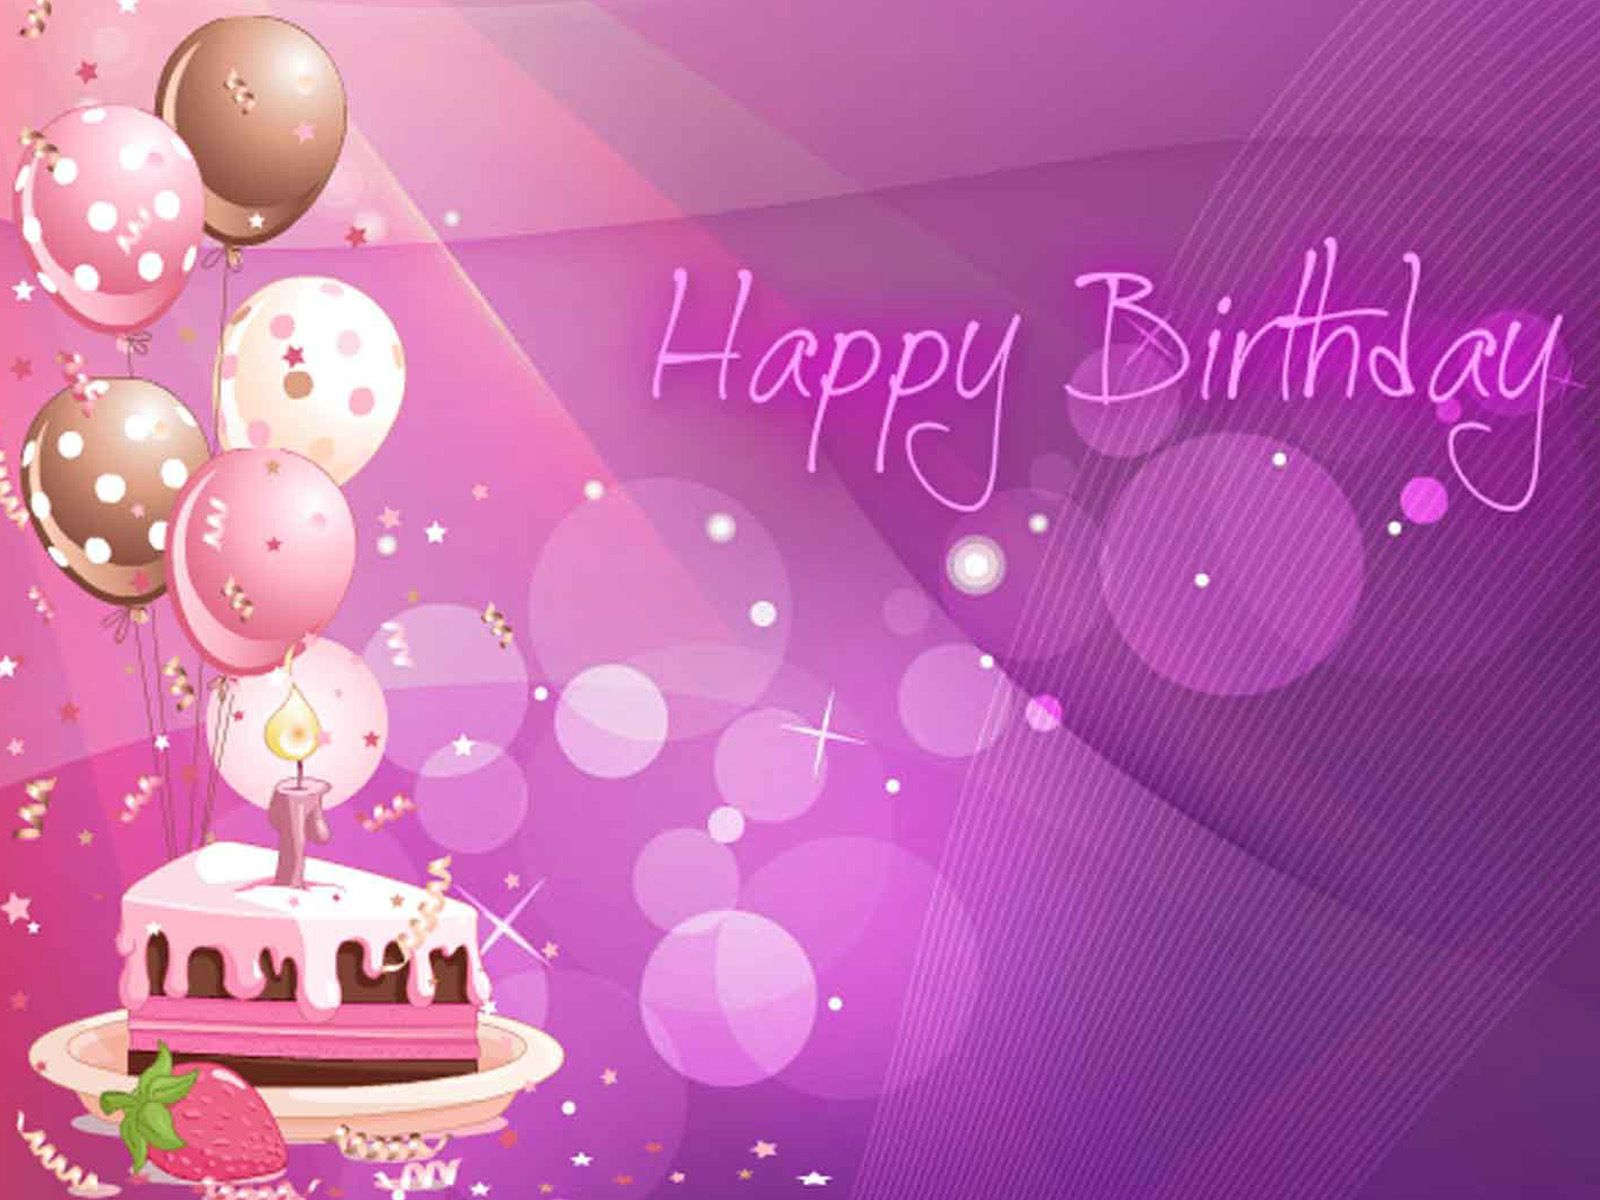 Facebook Happy Birthday Wall Posts Happy Birthday Wishes Birthday